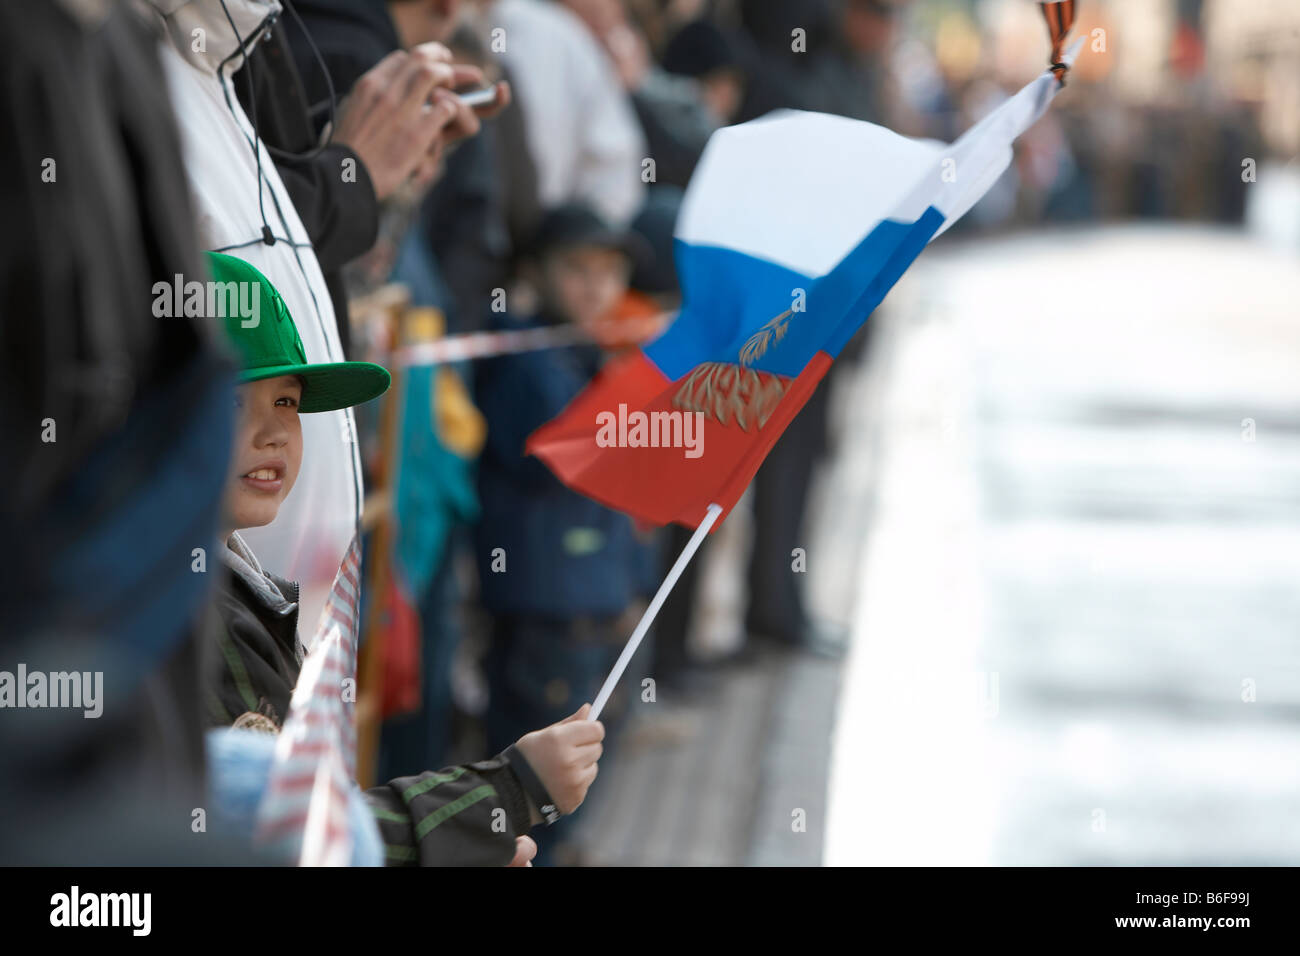 Crowds waving flags during Victory Day Celebration, Moscow Russia - Stock Image